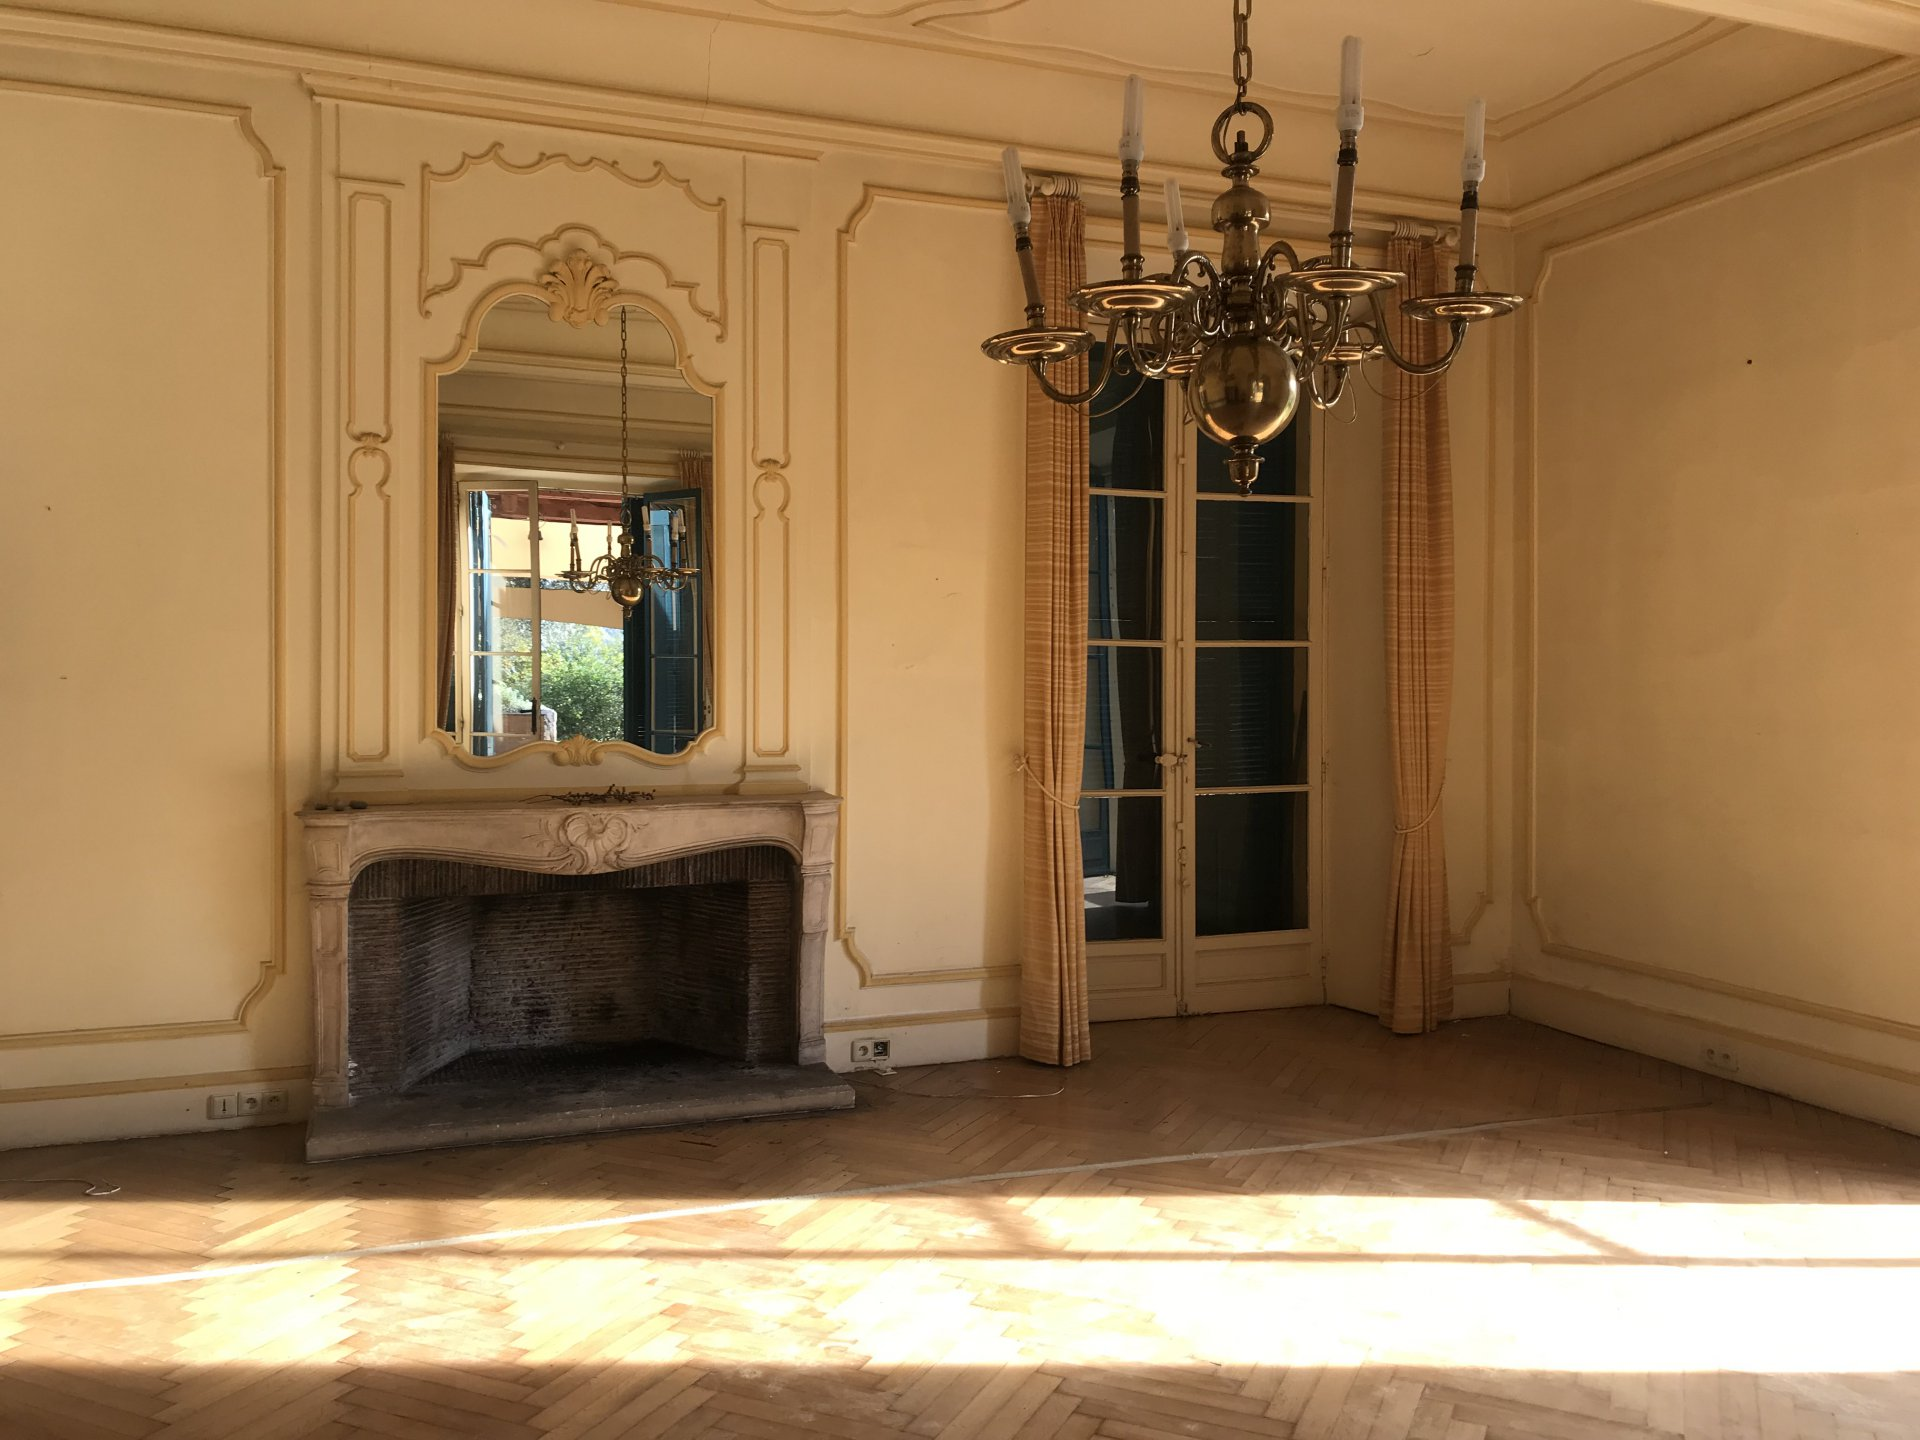 Mougins - Sumptuous property on 45 acres of grounds